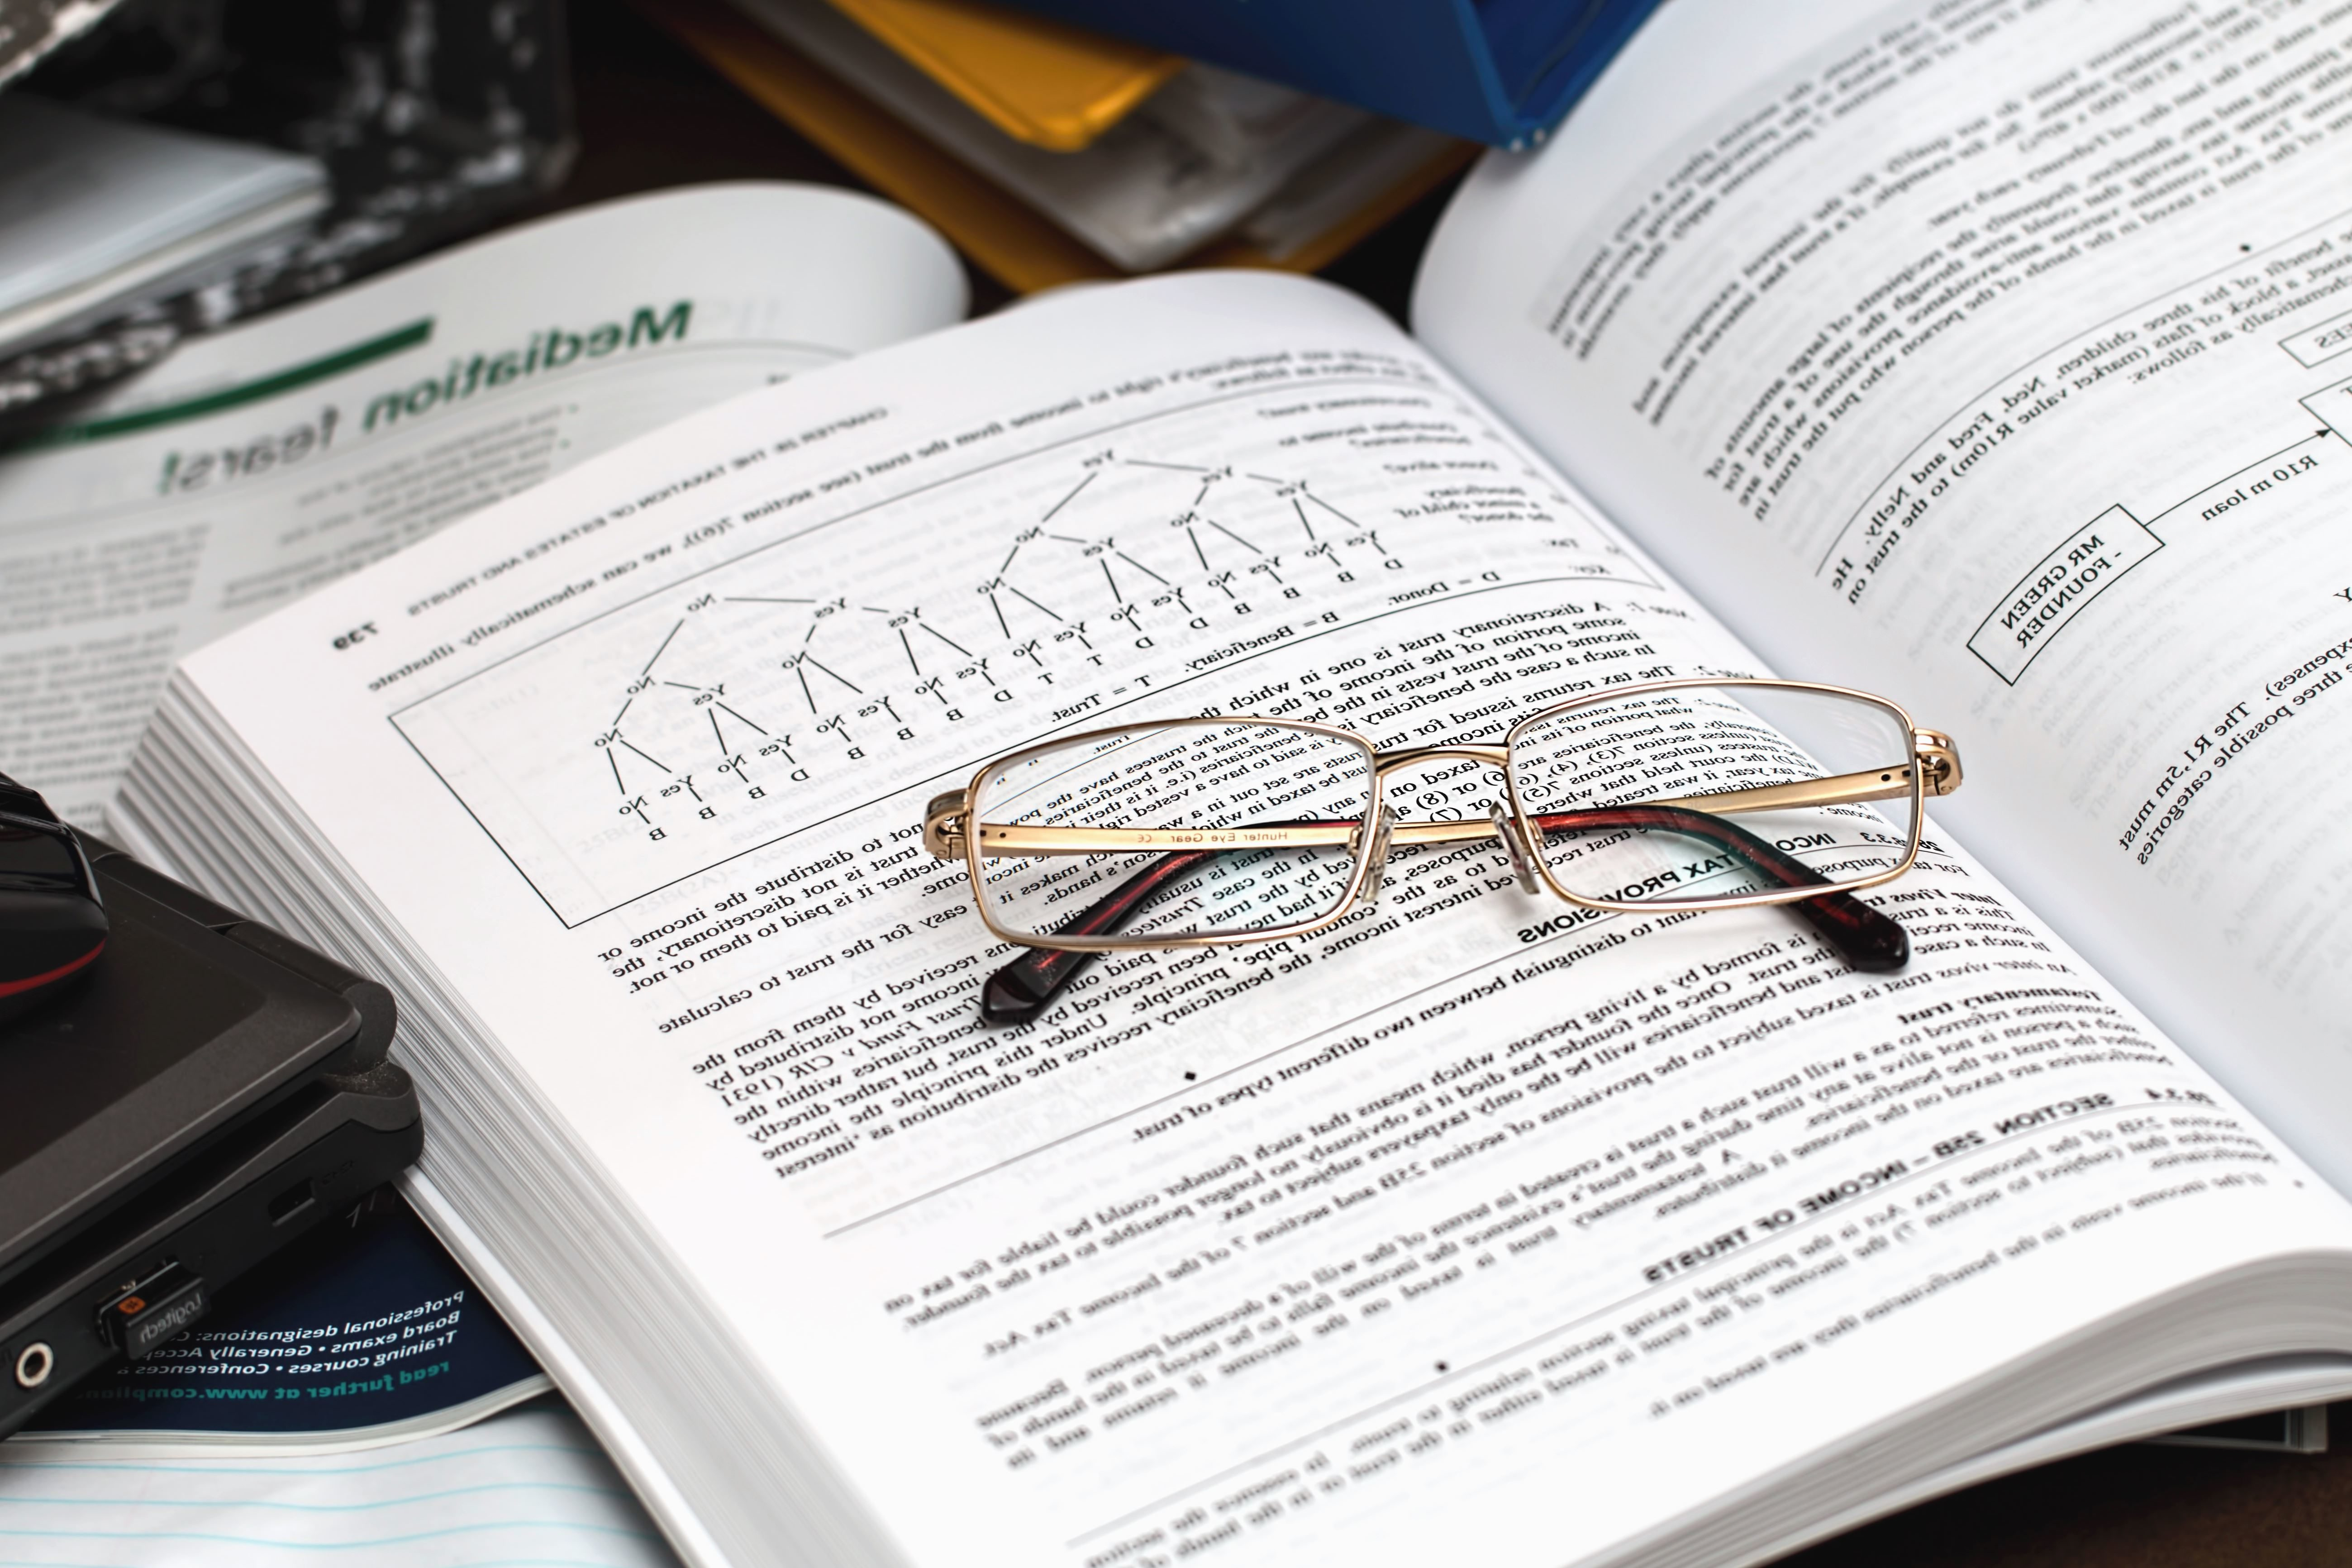 Free picture eyeglasses book science study paper reading